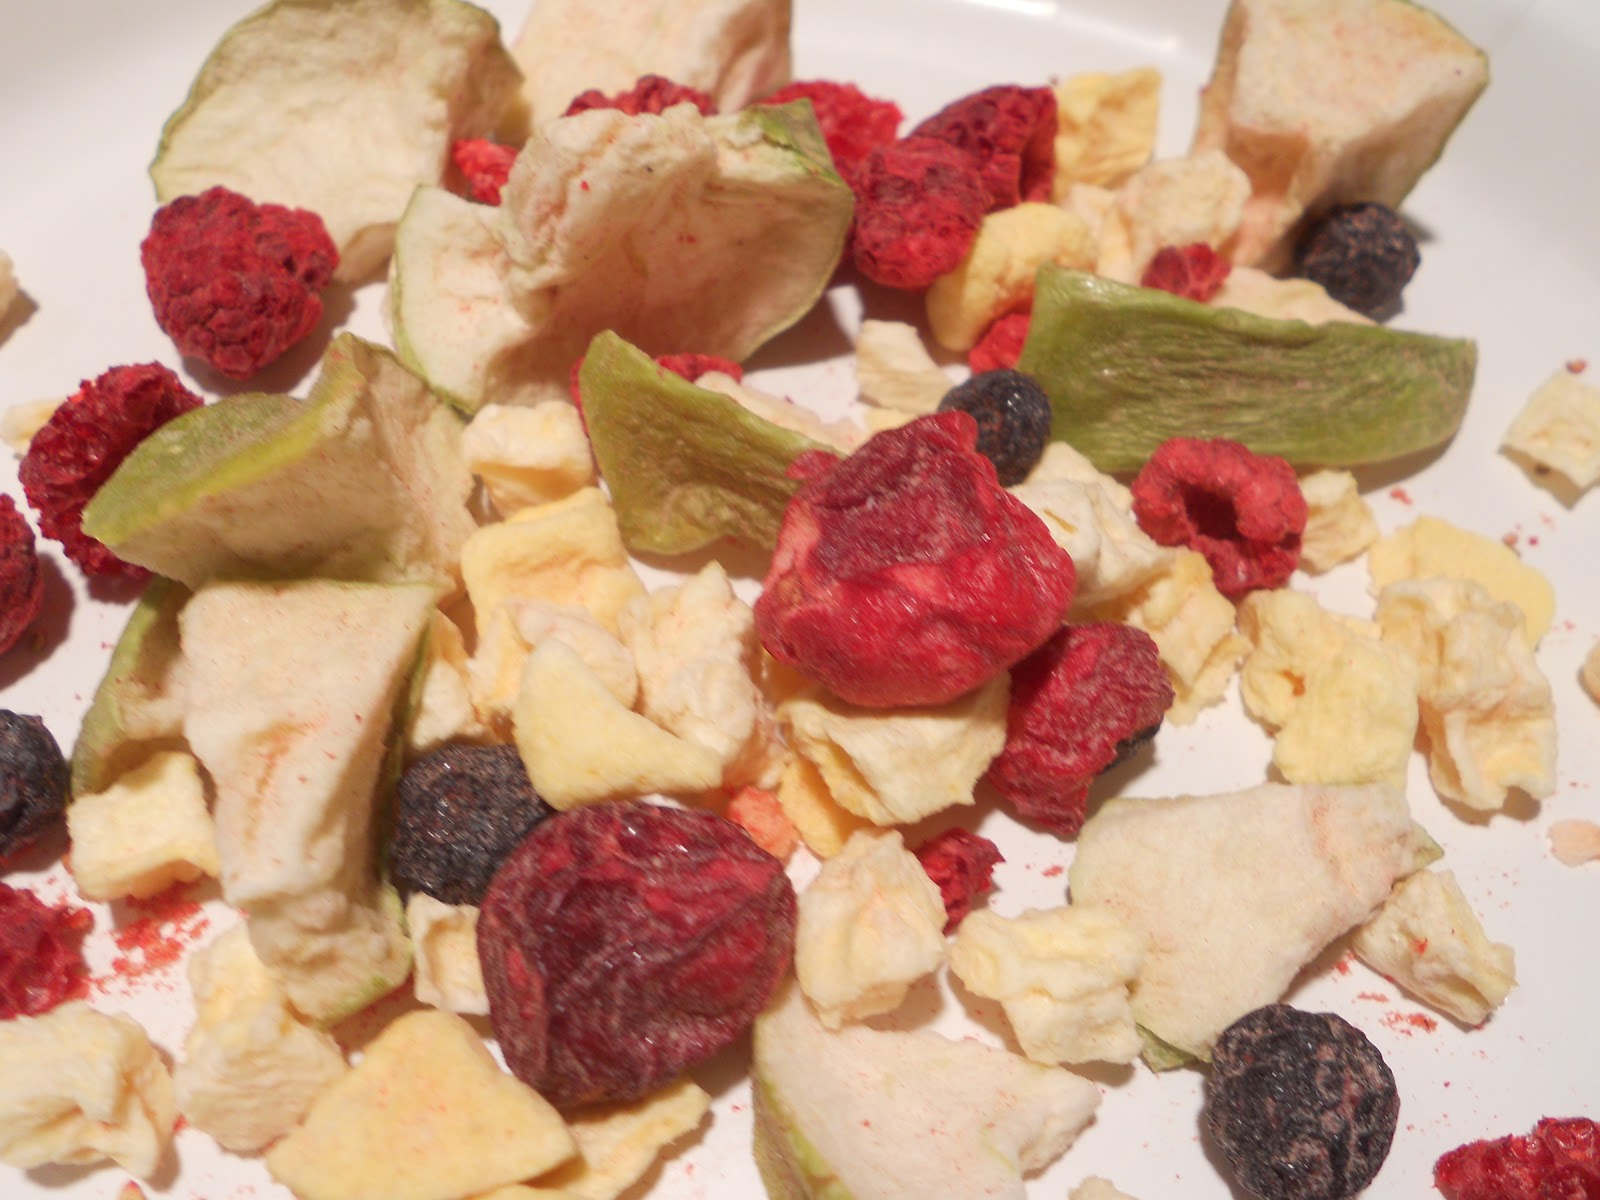 Adding Freeze Dried Fruits To Cakes